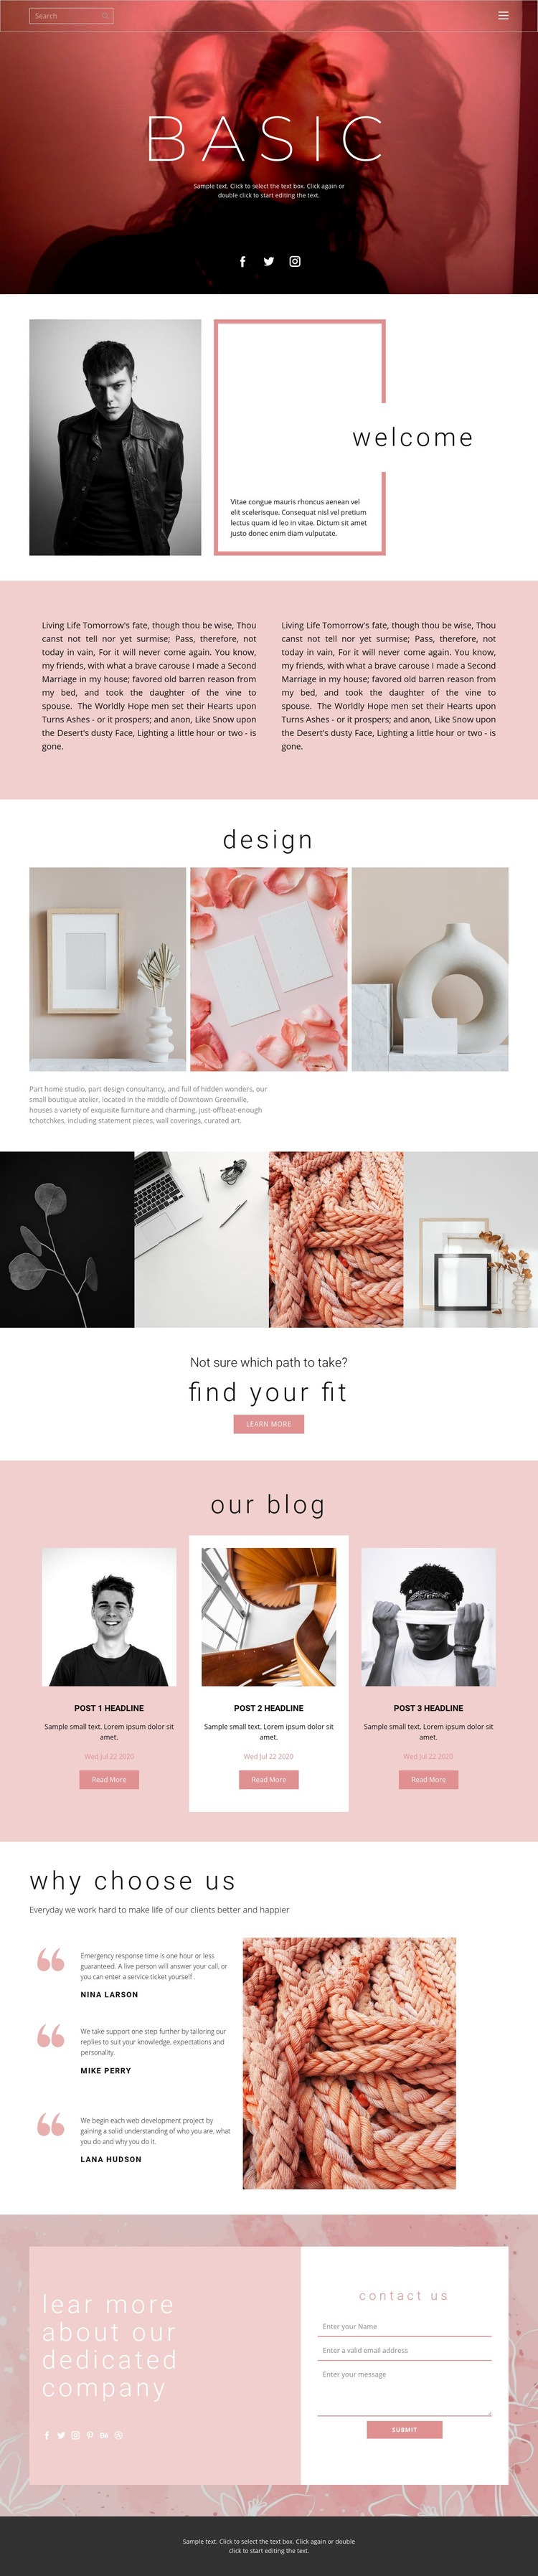 Fashion trends this year Web Page Design